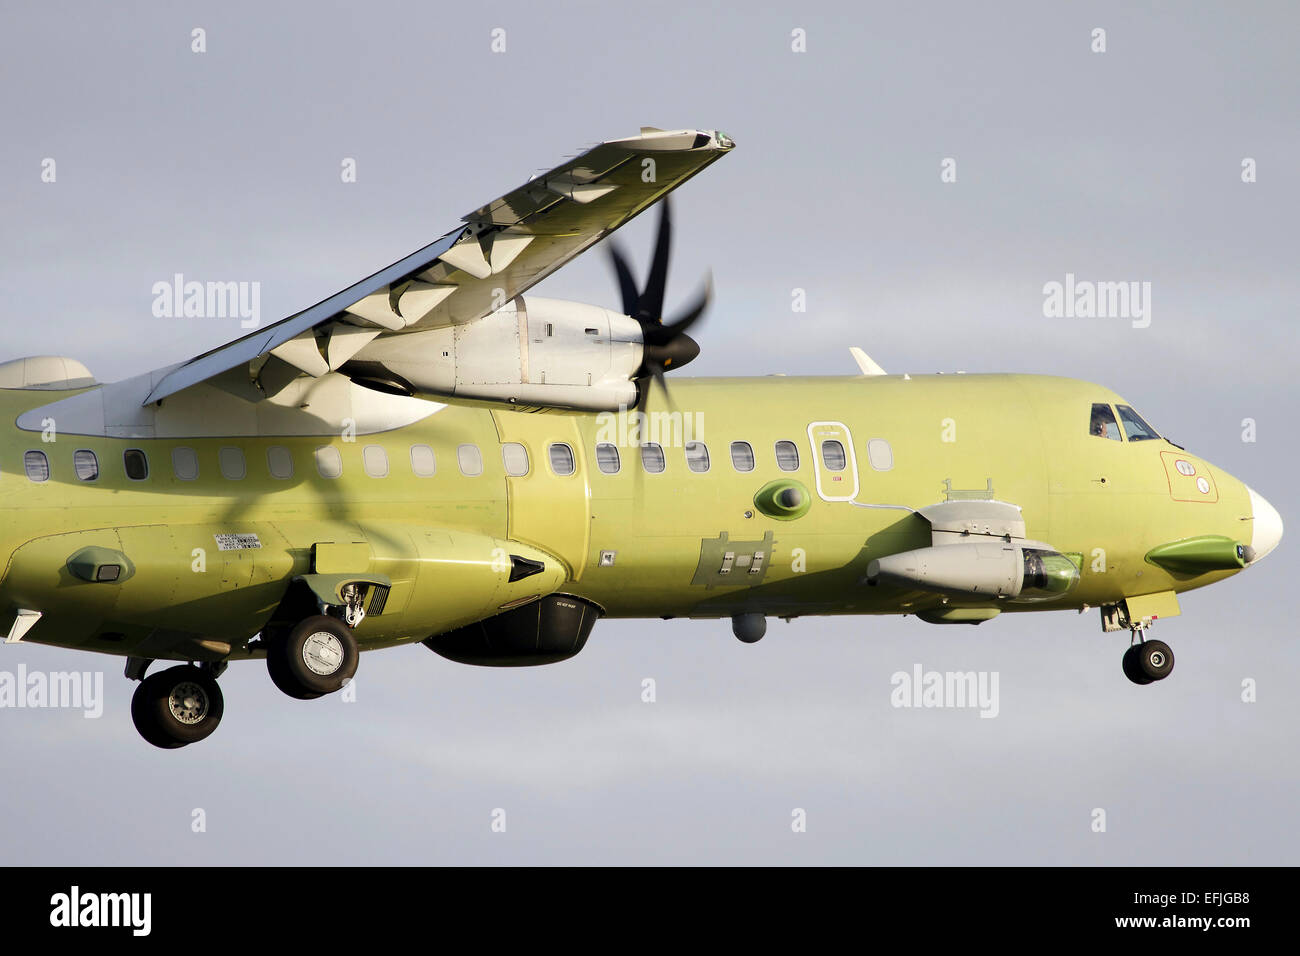 An ATR 72-600 MP (Maritime Patrol) aircraft of the Italian Air Force flying over Italy. - Stock Image